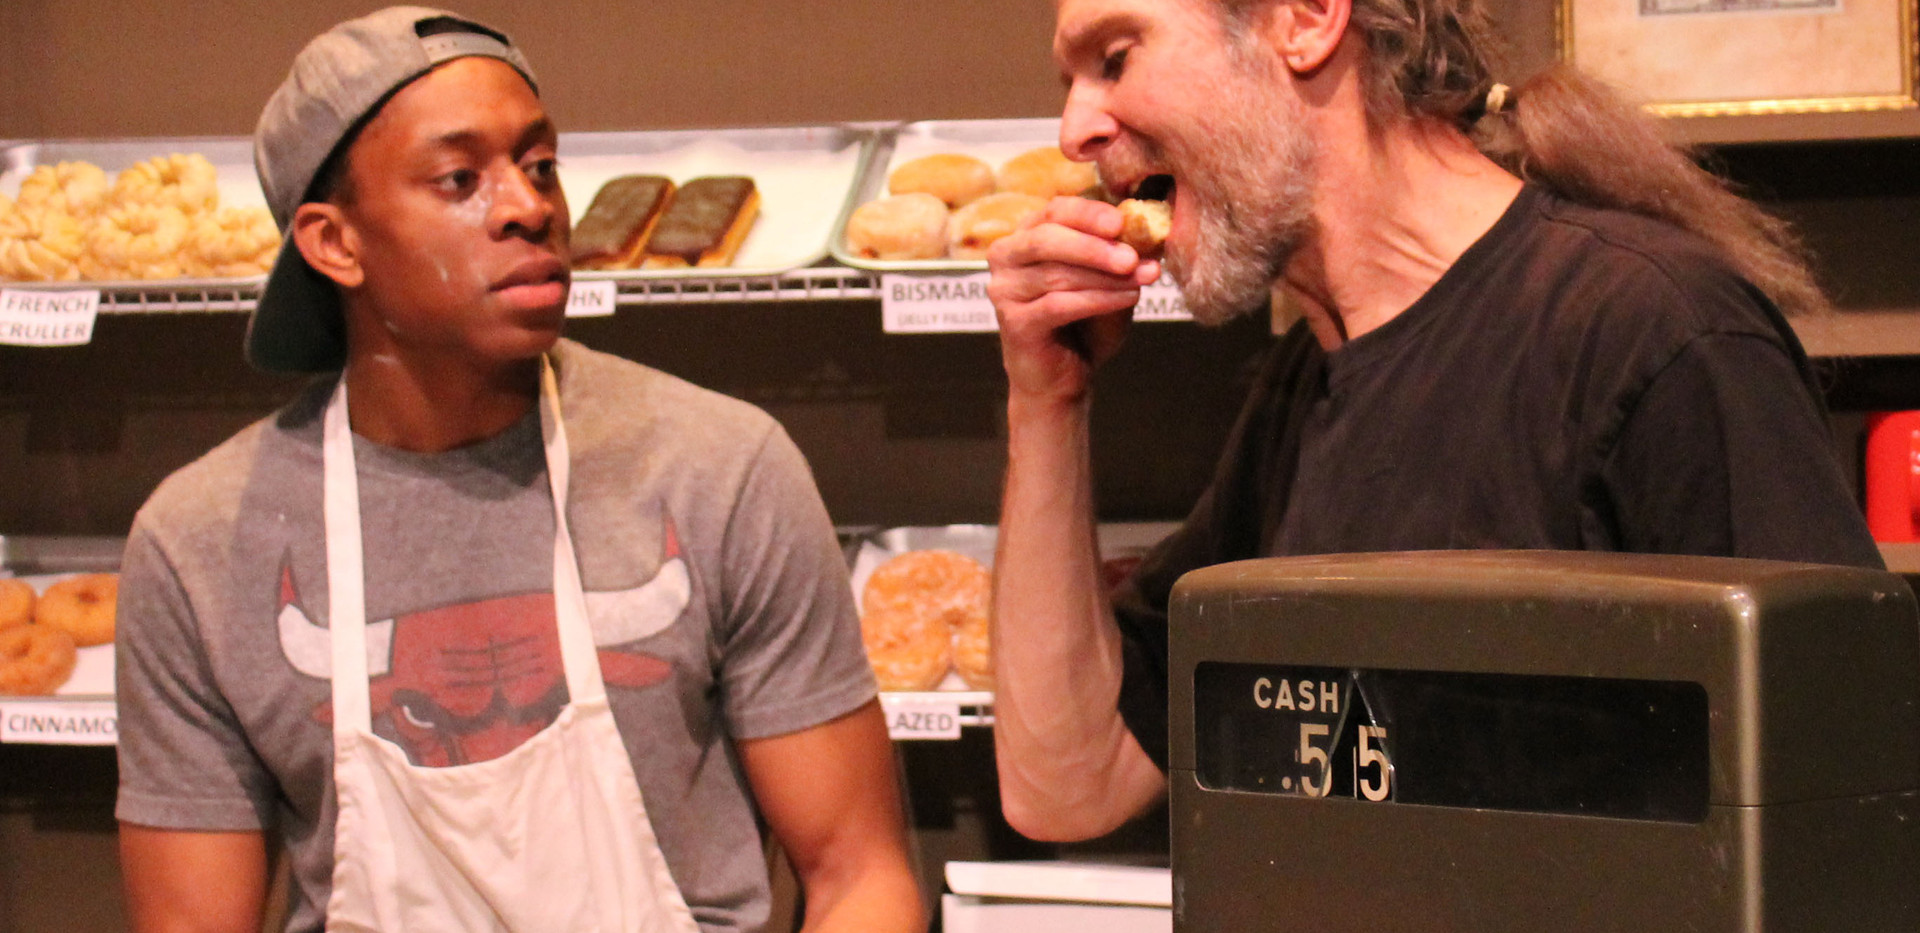 Superior Donuts 2013 Freshly Made.jpg